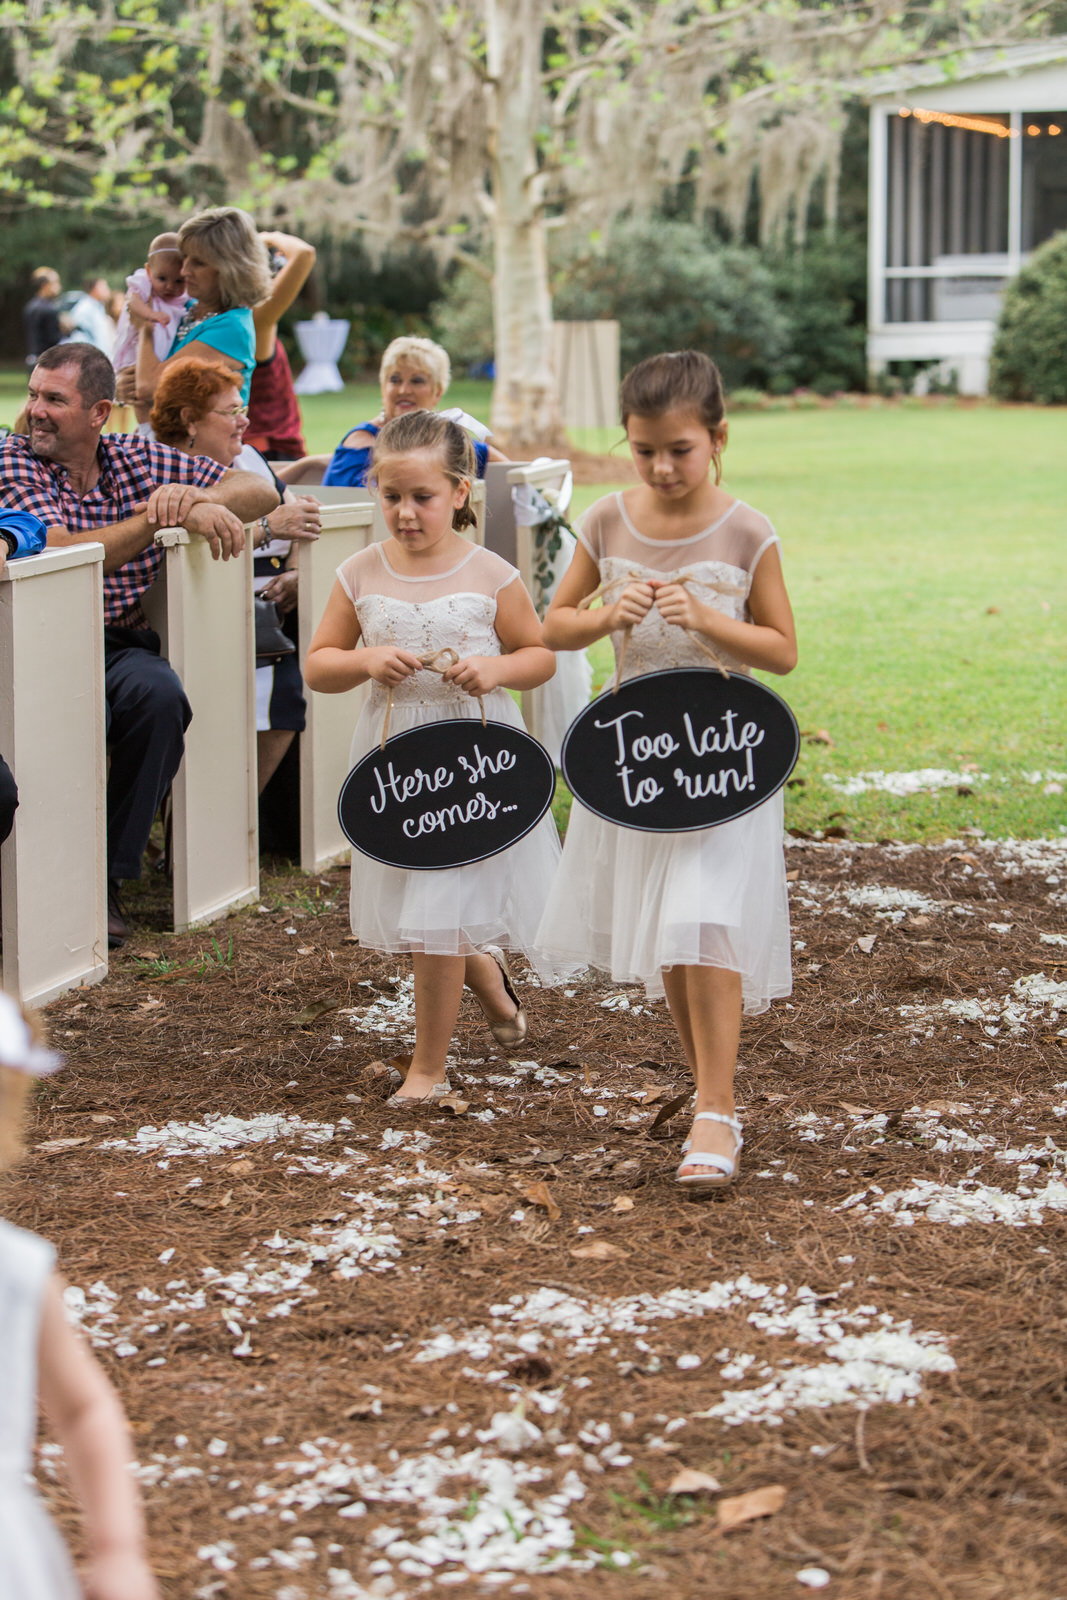 Flower girls carrying signs during wedding ceremony